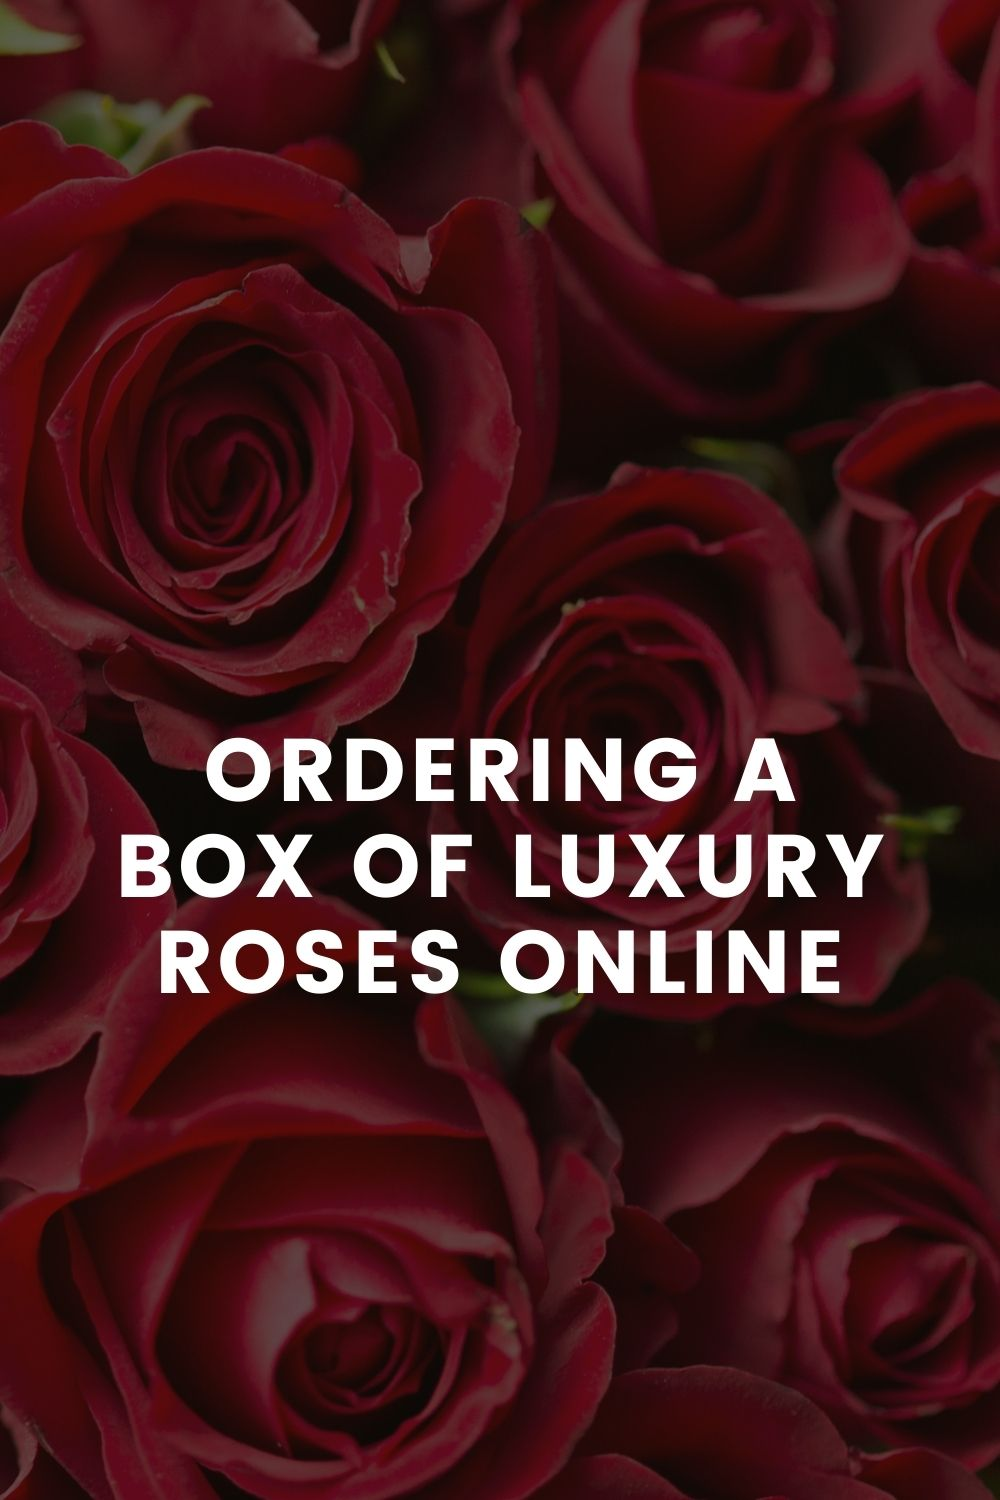 Ordering a Box of Luxury Roses Online